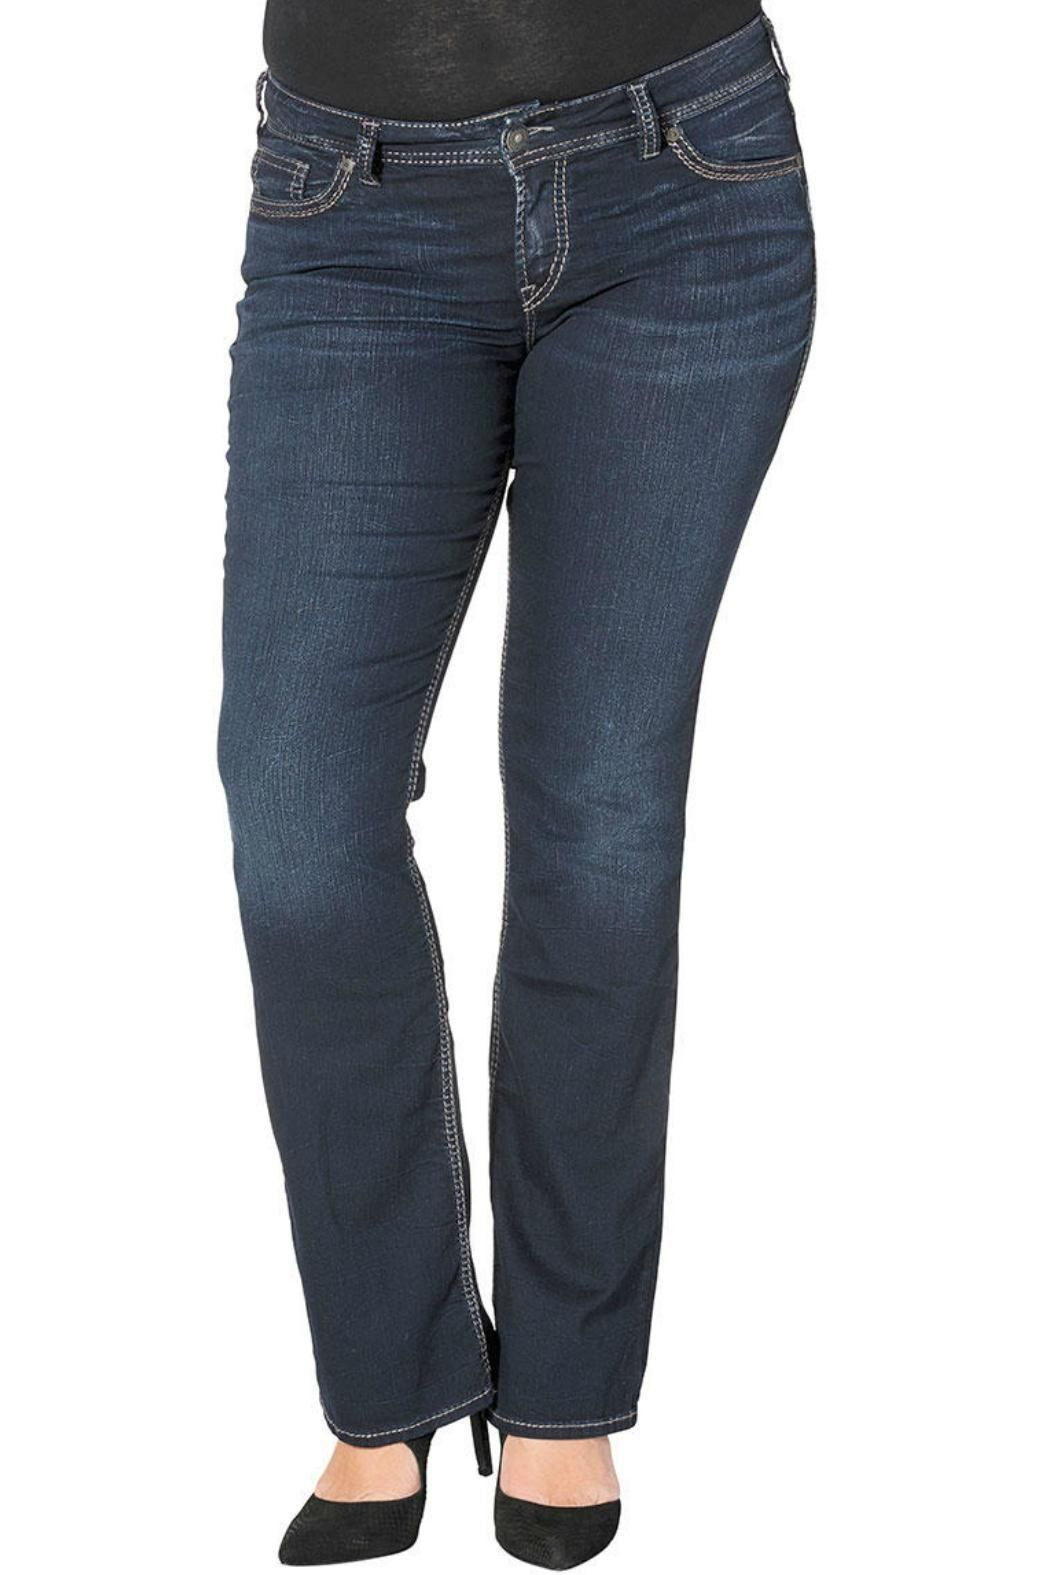 Suki MID/ slim BOOT.  Mid Rise  Relaxed Hip & Thigh  Slim Bootcut Leg Suki Slim Boot by Silver Jeans Co.. Clothing - Bottoms - Jeans & Denim - Slim Alabama